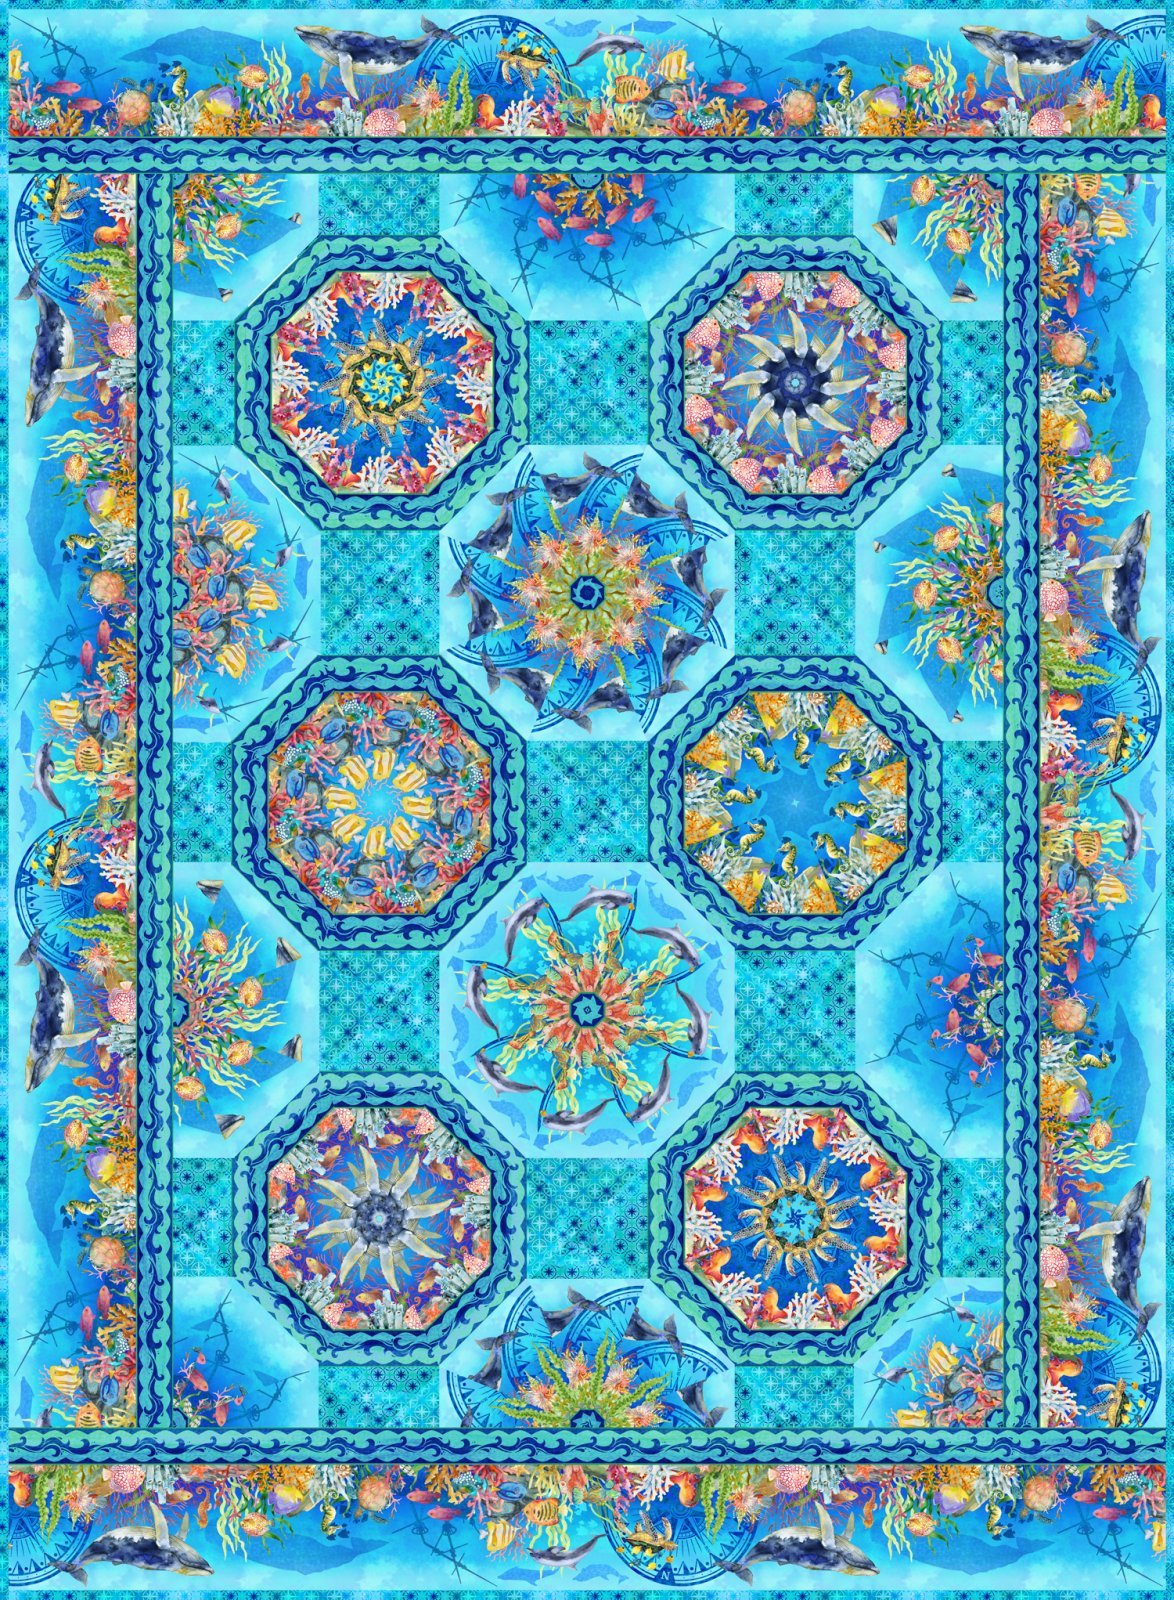 Calypso One Fabric Kaleidoscope Fabric Kit, Blue